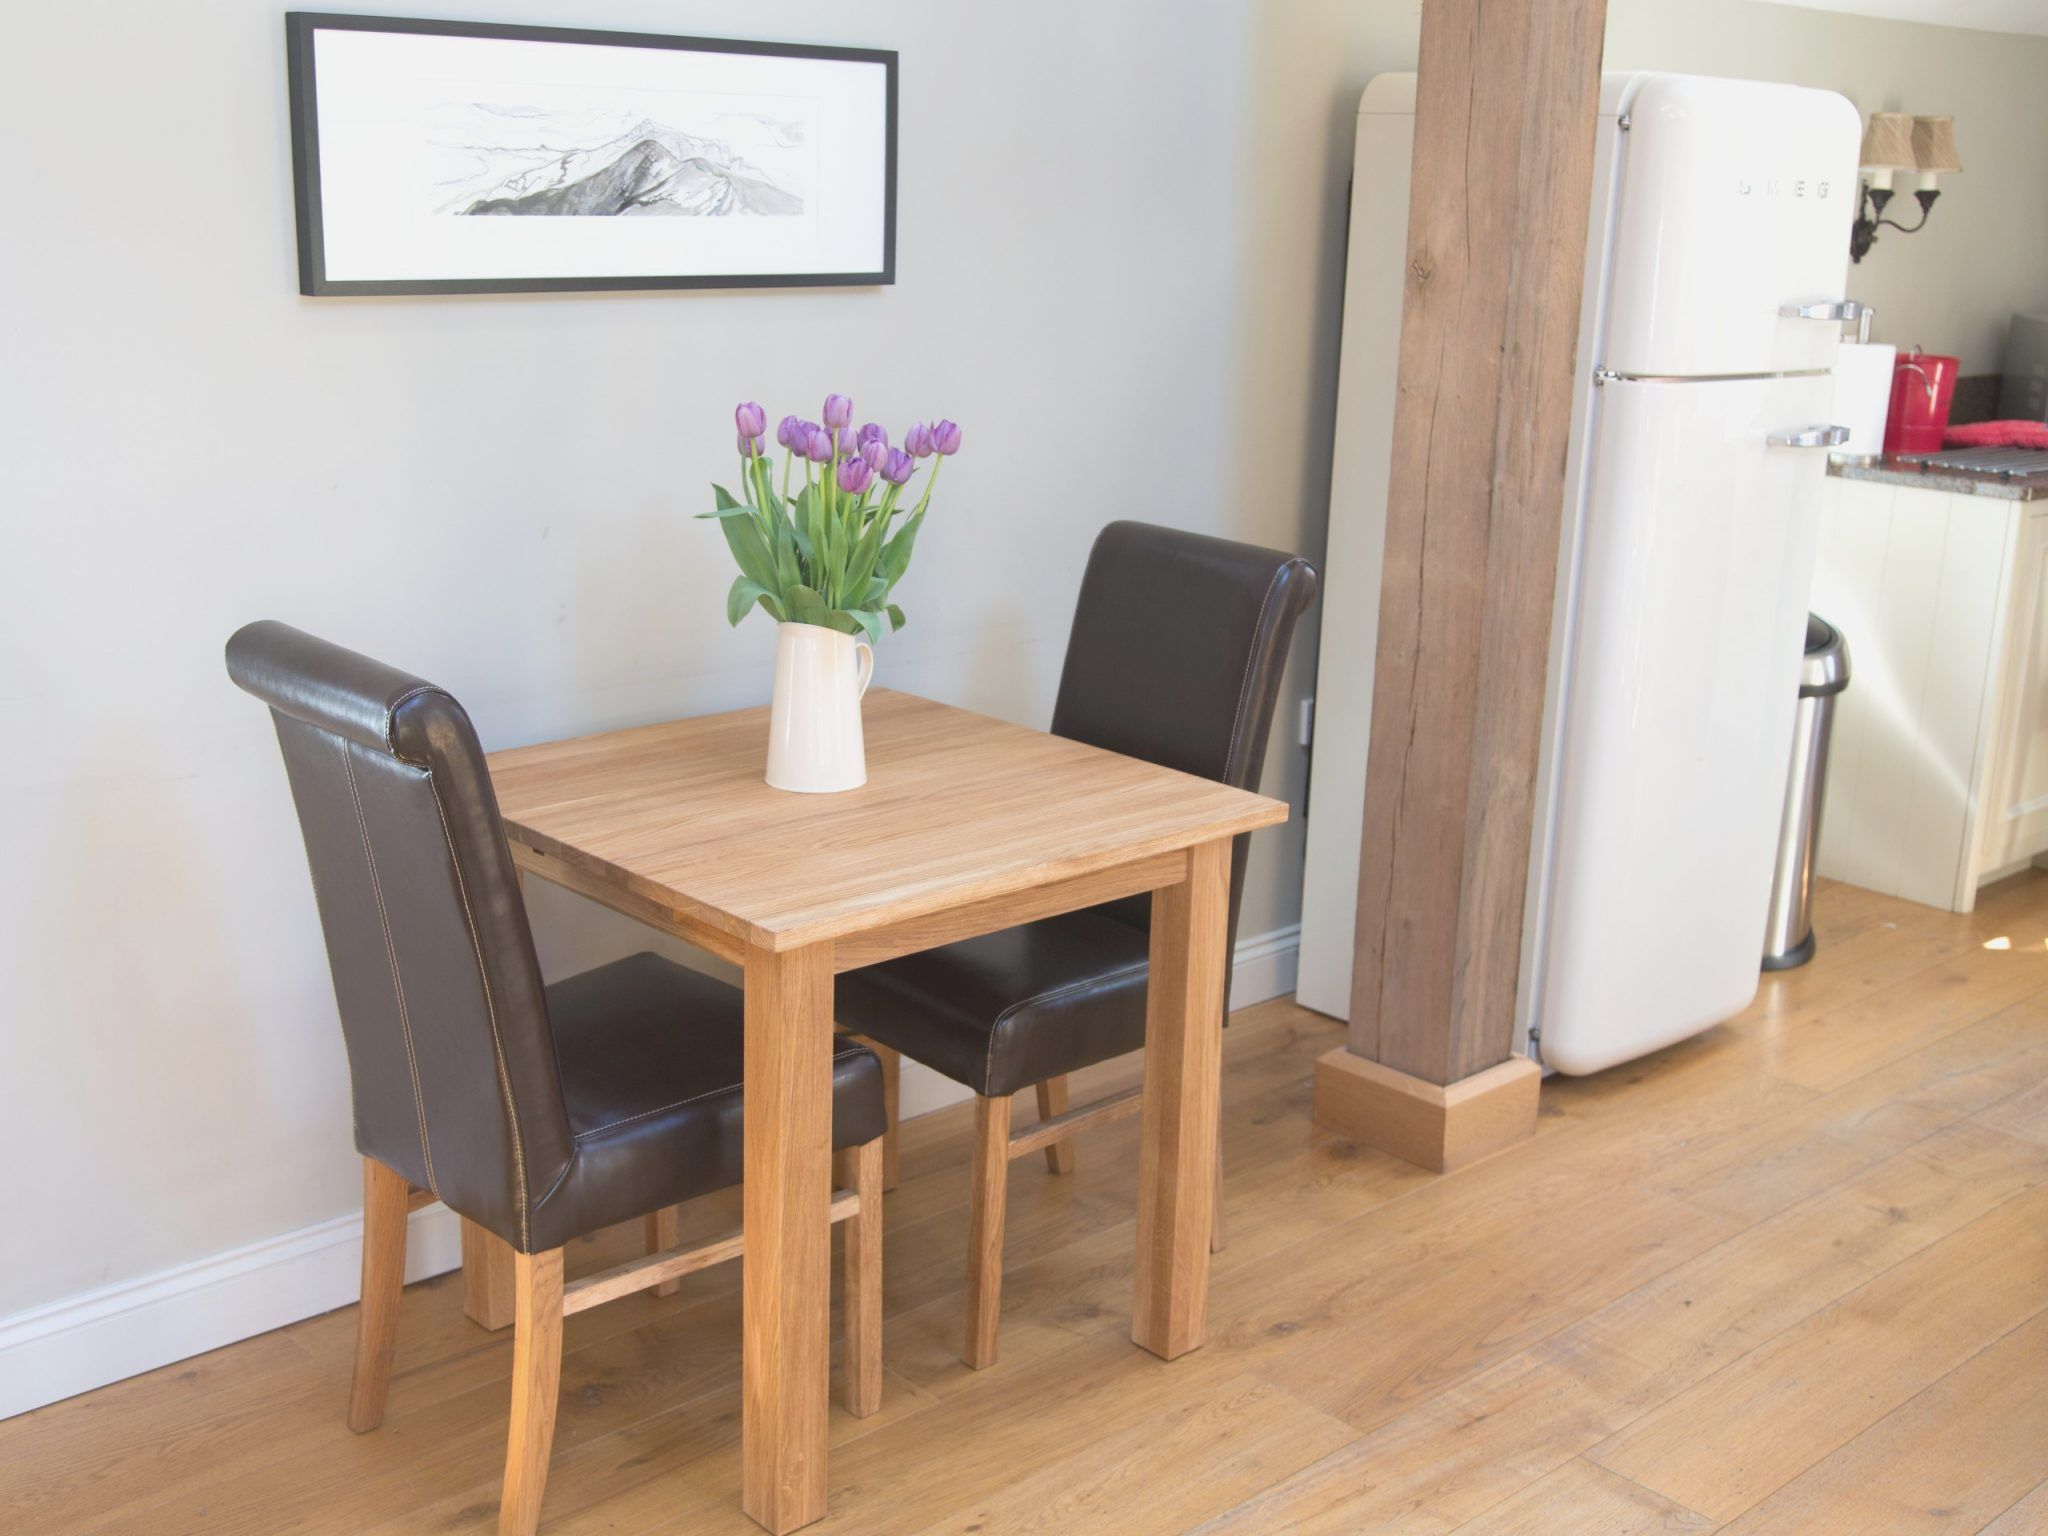 Small Kitchen Table With 2 Chairs Kitchen Table With 2 Chairs